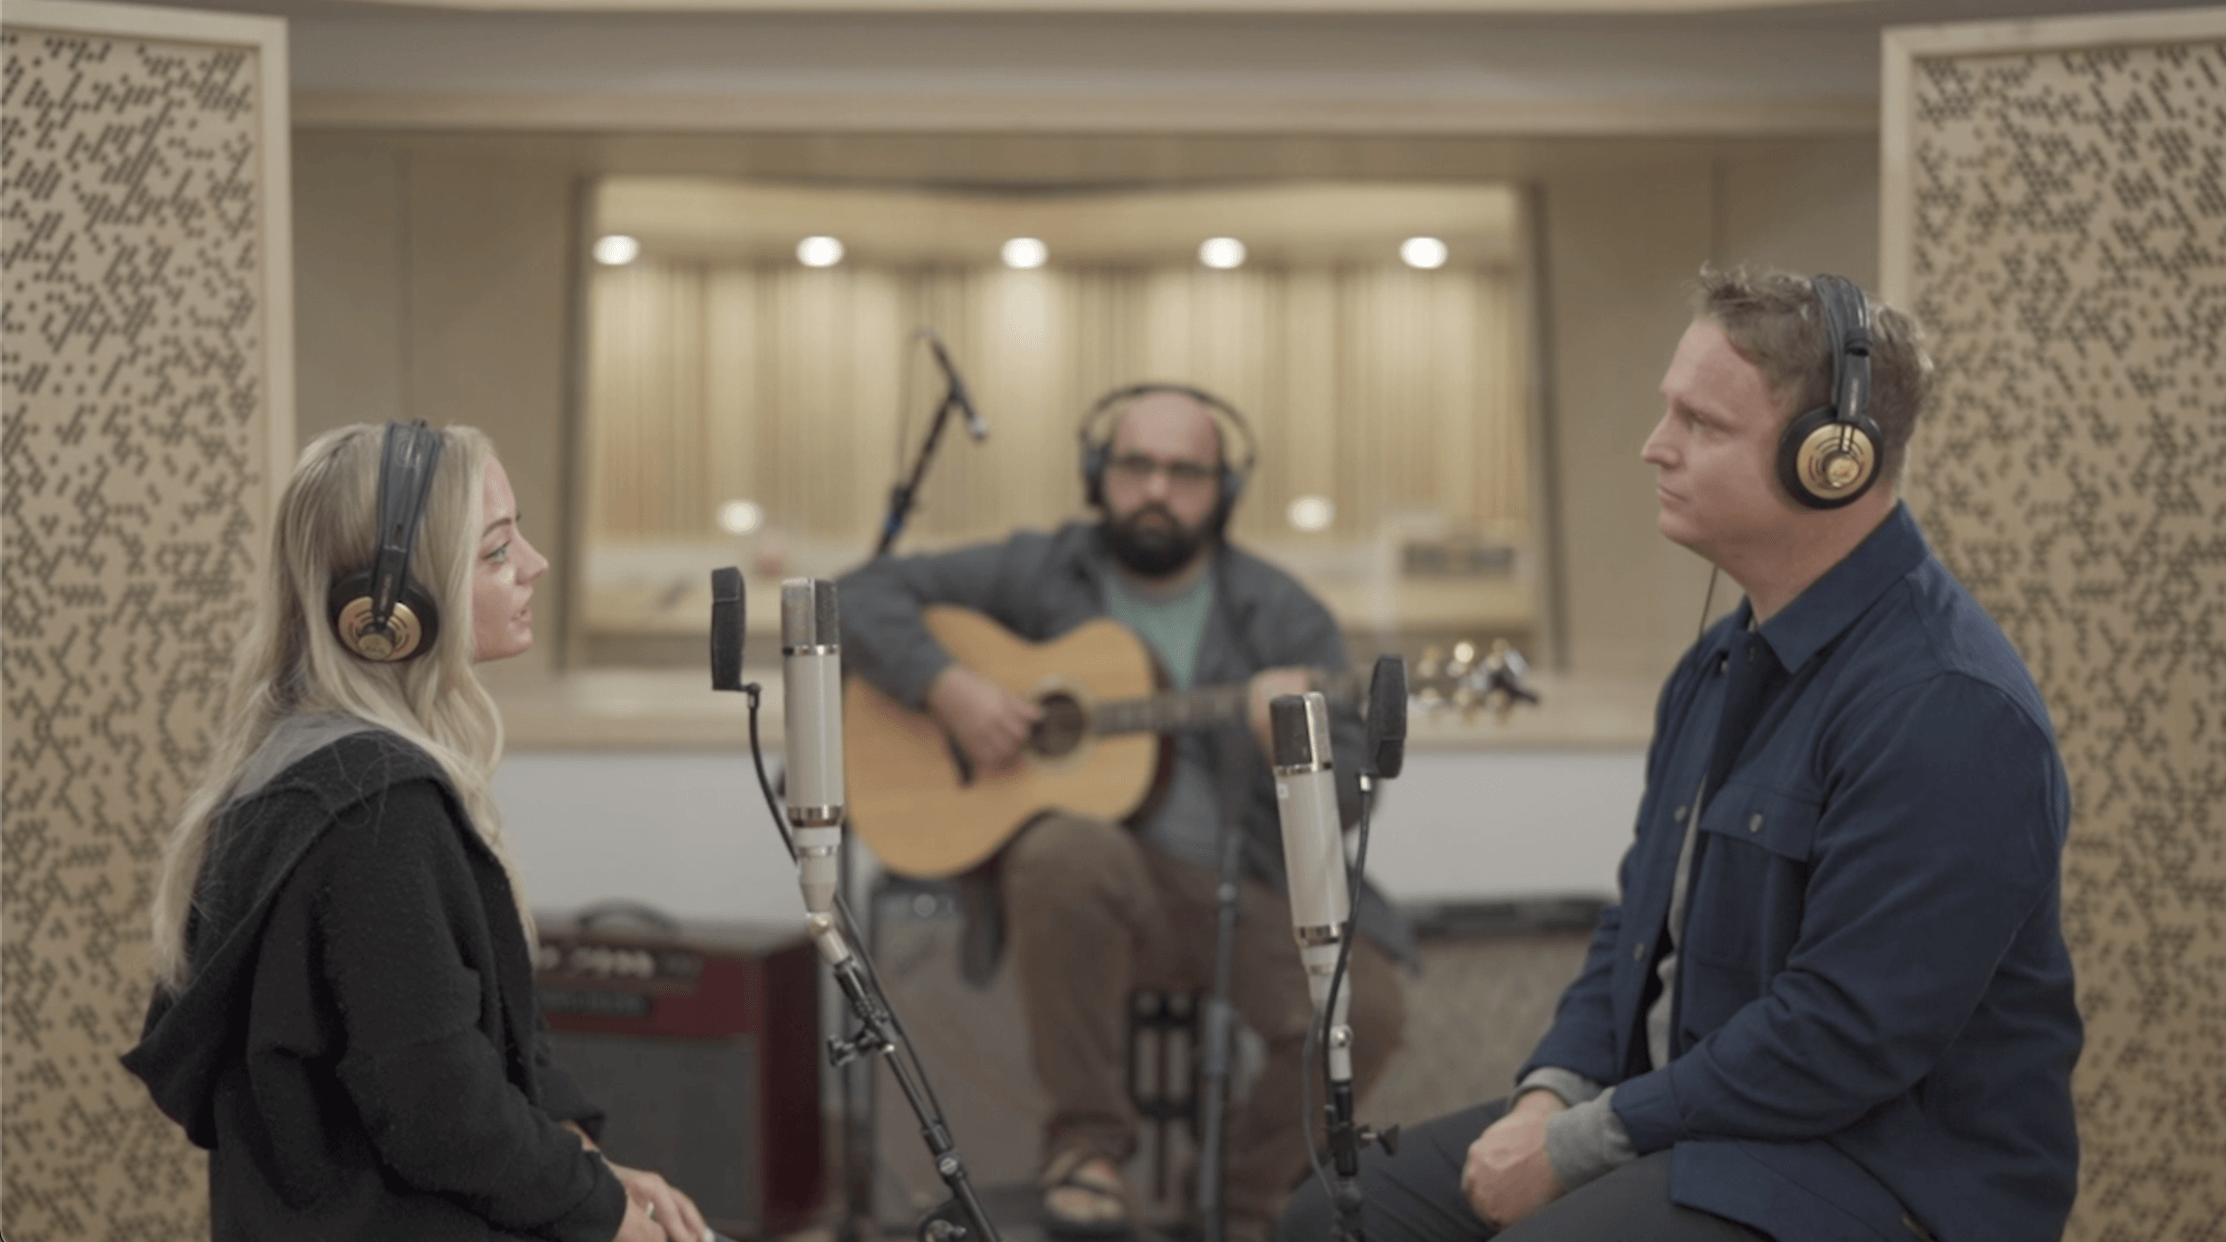 Saints Channel Studio - Madilyn Page Interview and Song